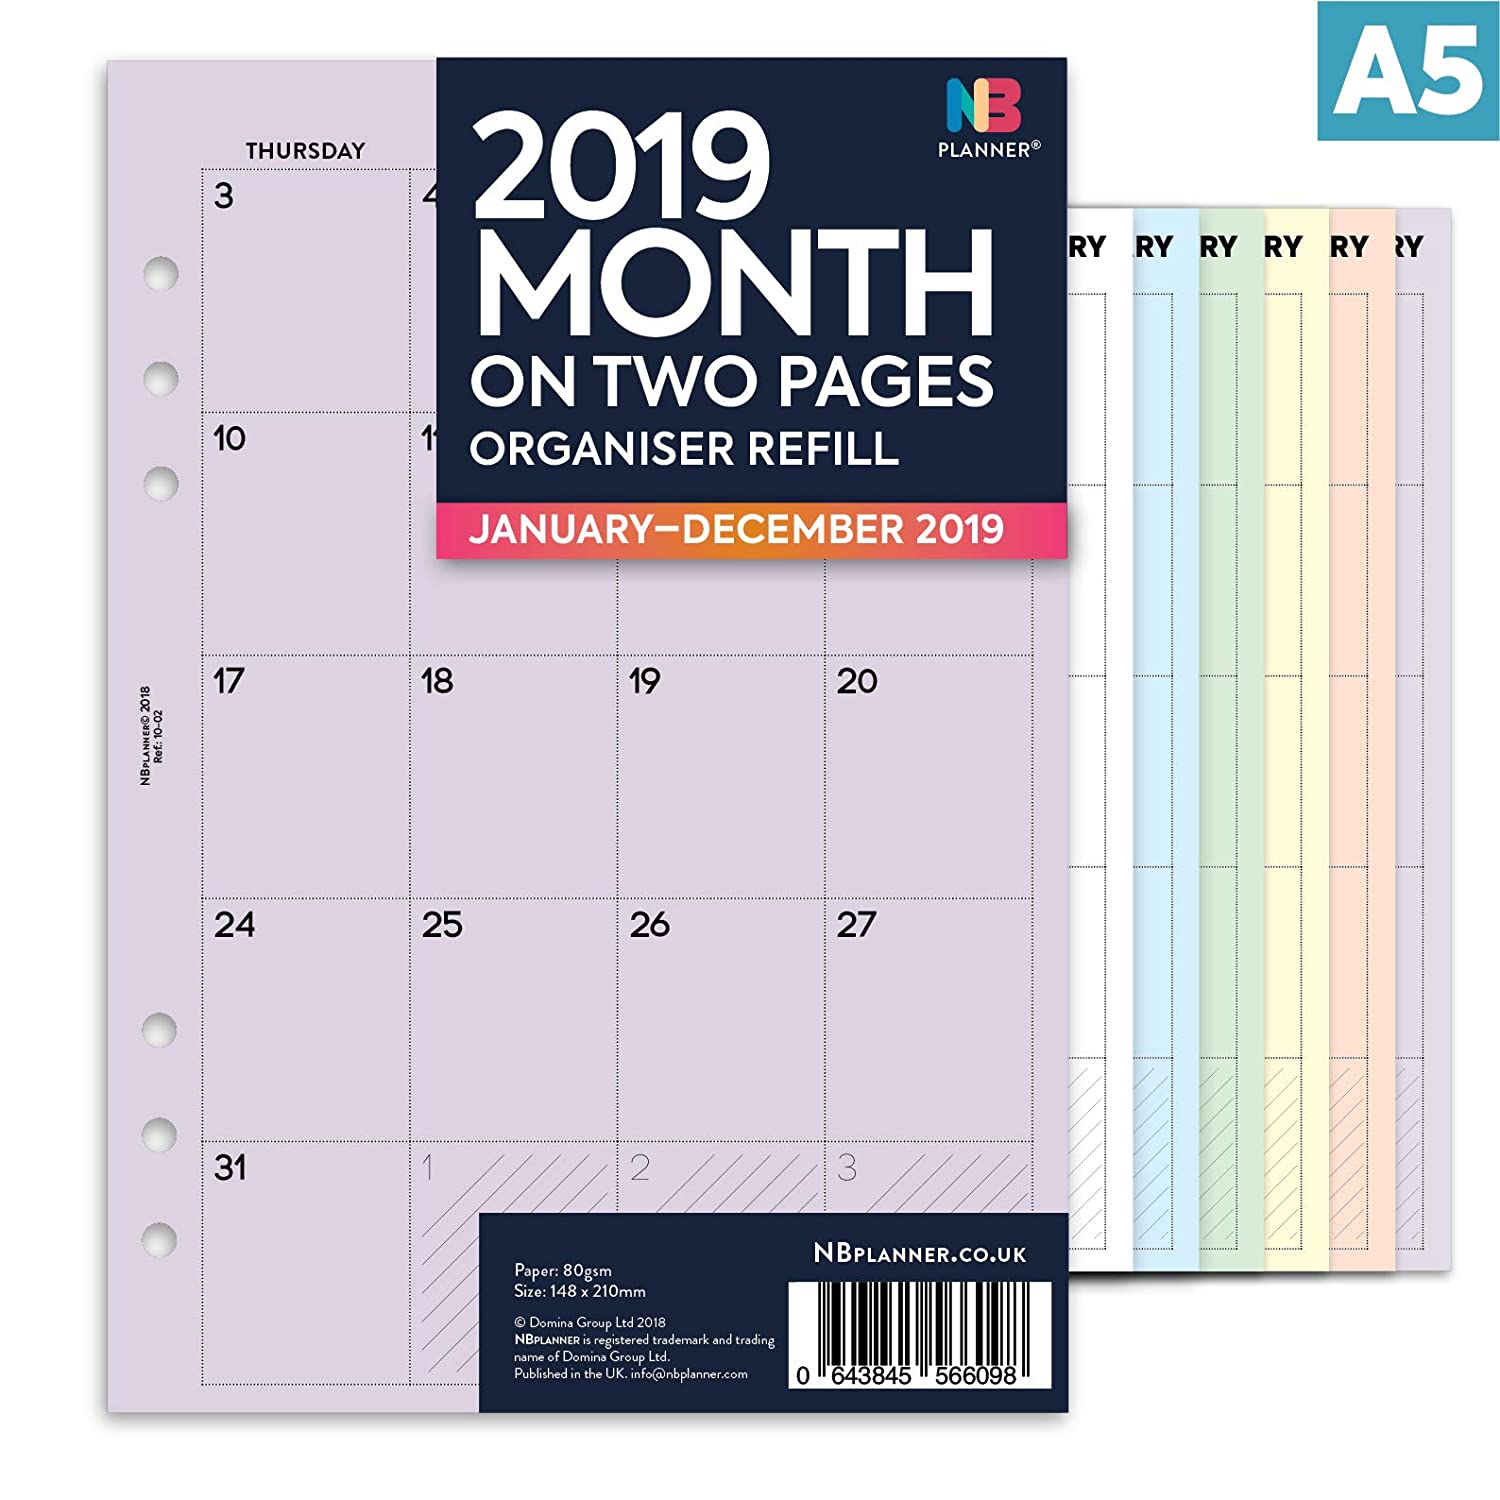 Nbplanner® 2019 mese su due pagine A5 Filofax Panner compatibile, in inglese organiser refill inserto colorato A5 rosa Domina Group Ltd